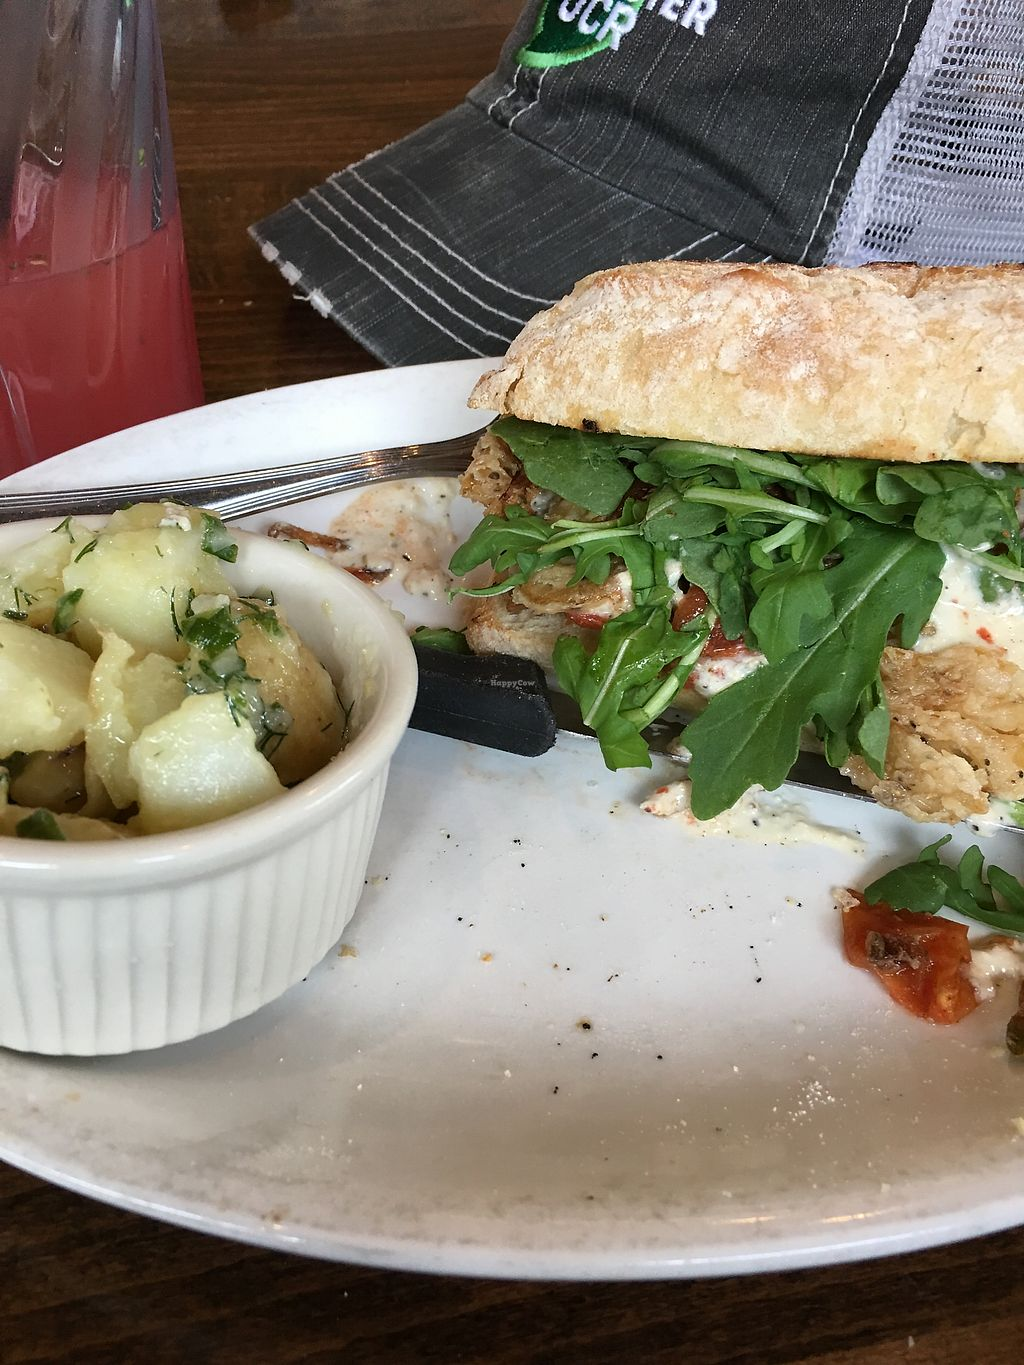 """Photo of Native Foods - Boulder  by <a href=""""/members/profile/NathanOriol"""">NathanOriol</a> <br/>Septal steak sandwich w/ potato salad <br/> September 8, 2017  - <a href='/contact/abuse/image/31144/302170'>Report</a>"""